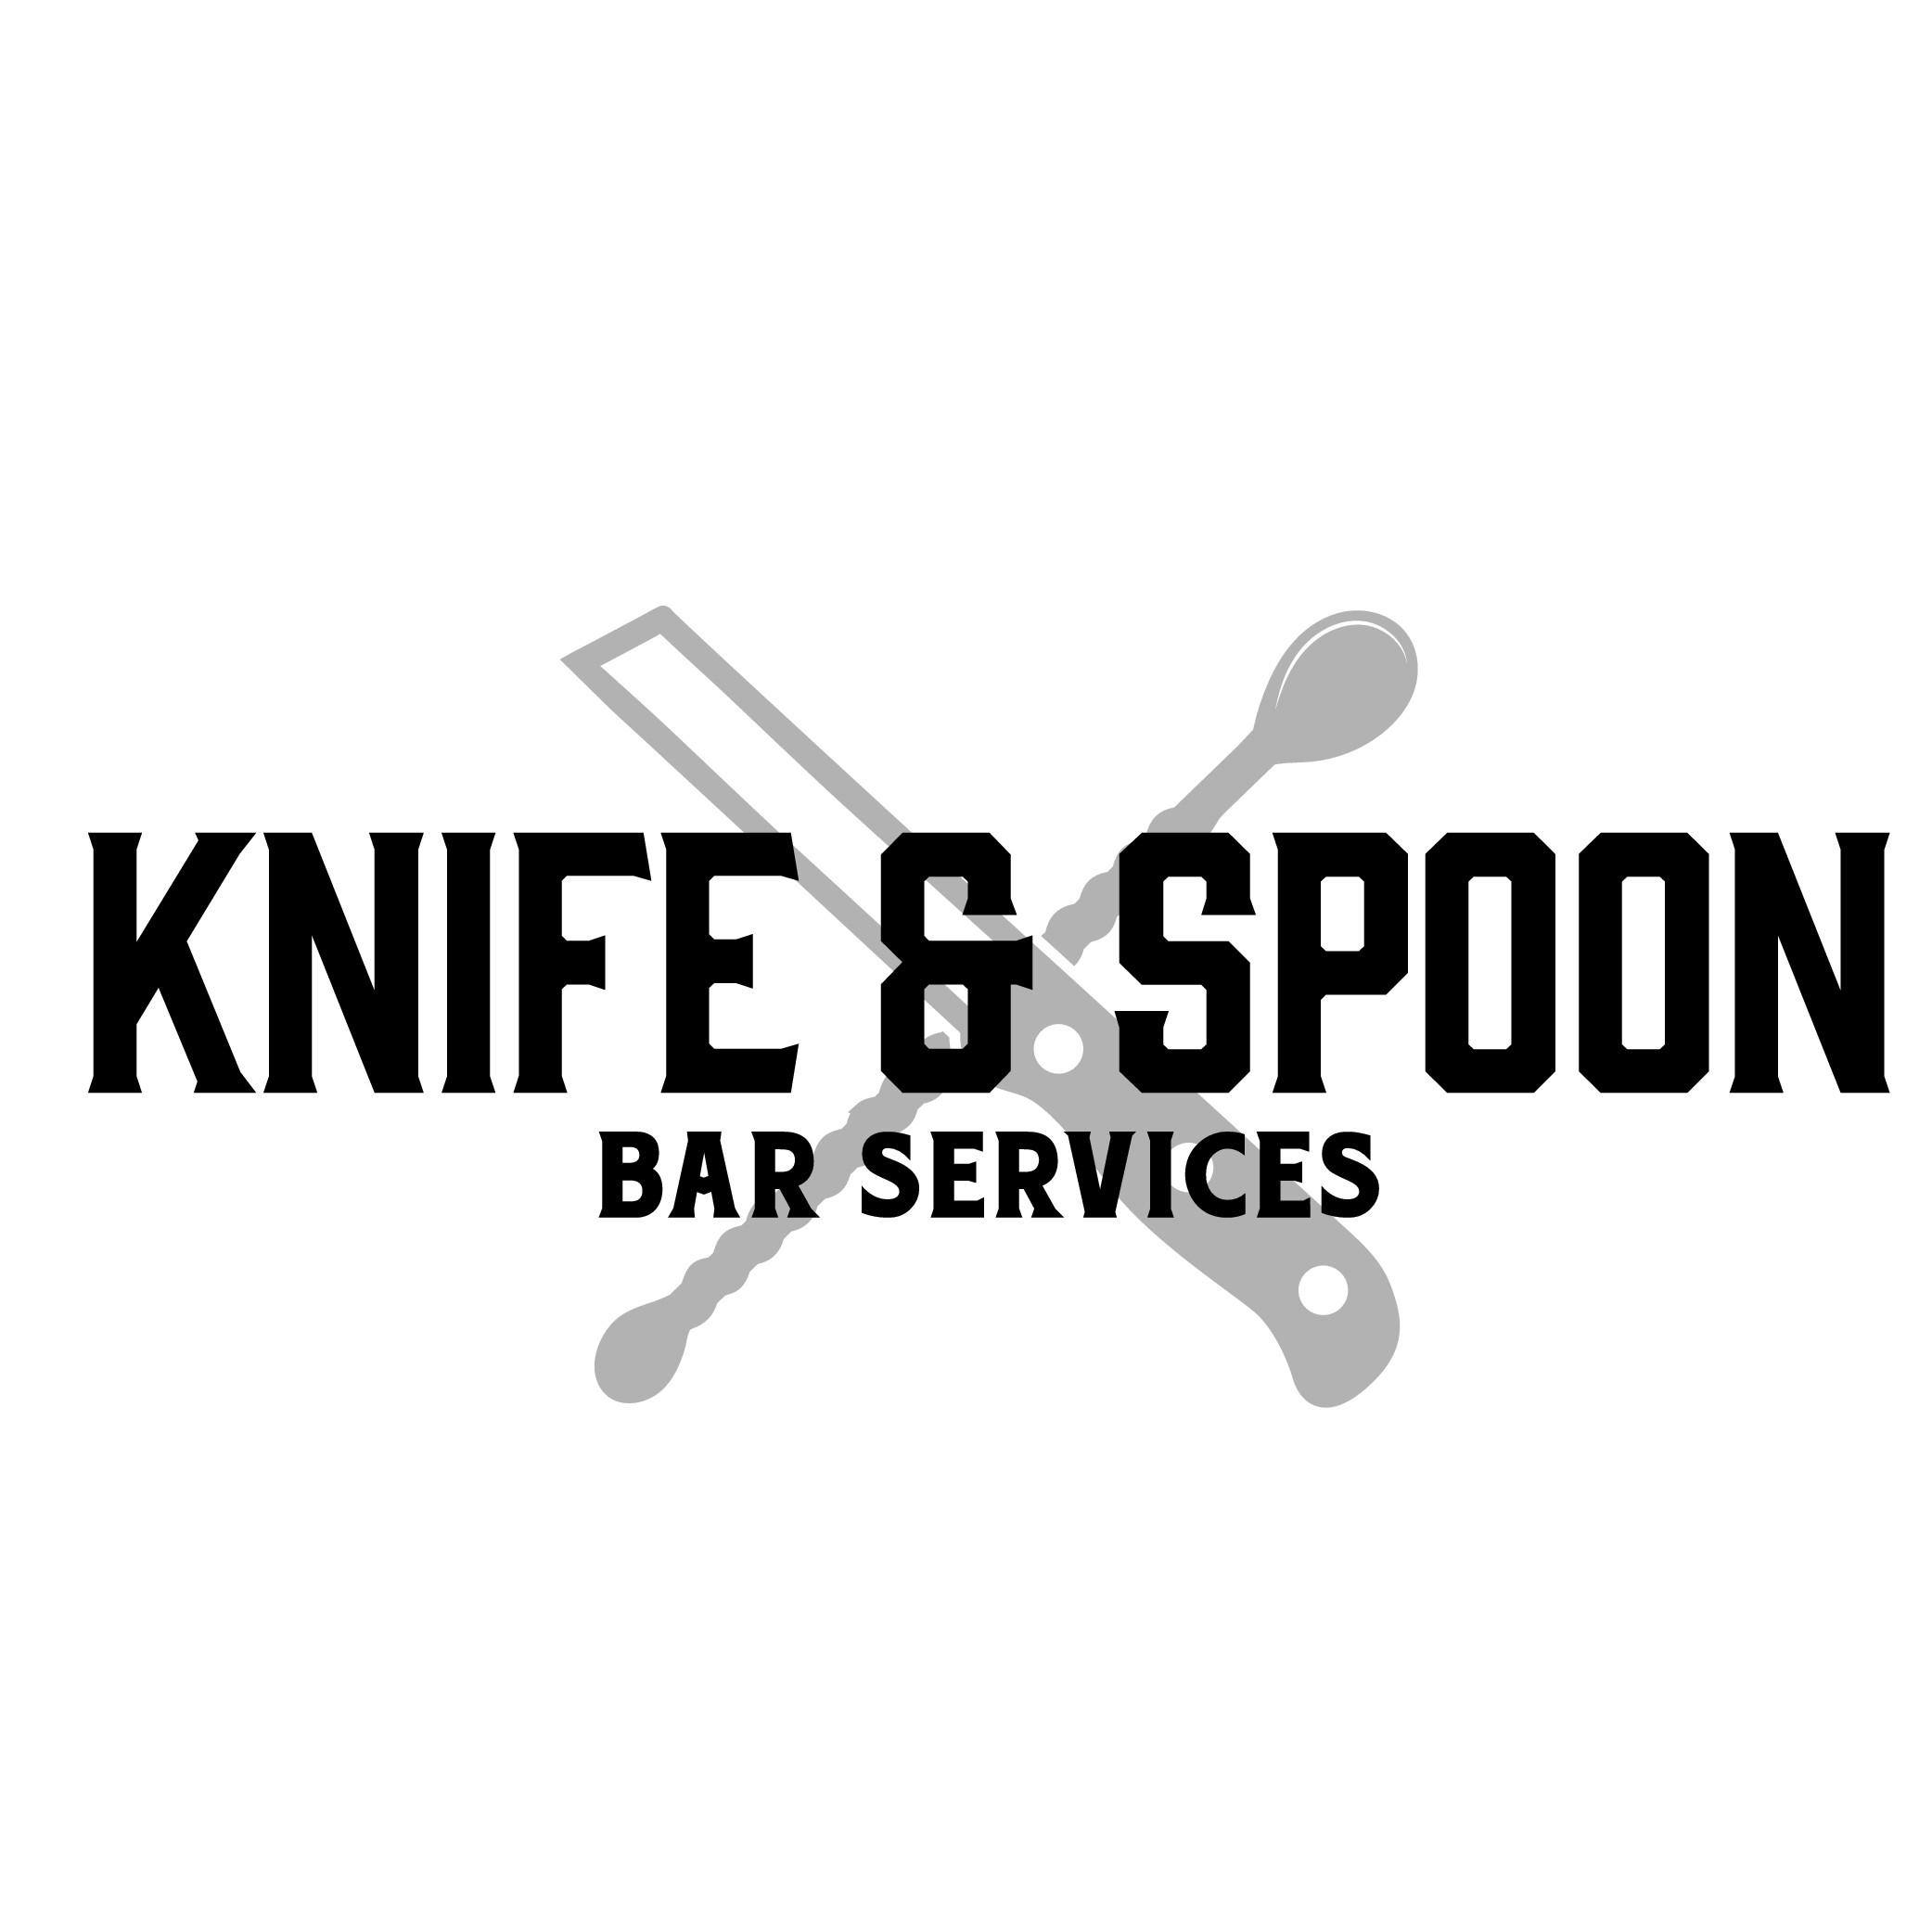 Knife & Spoon needs a classy new logo for bartending services.